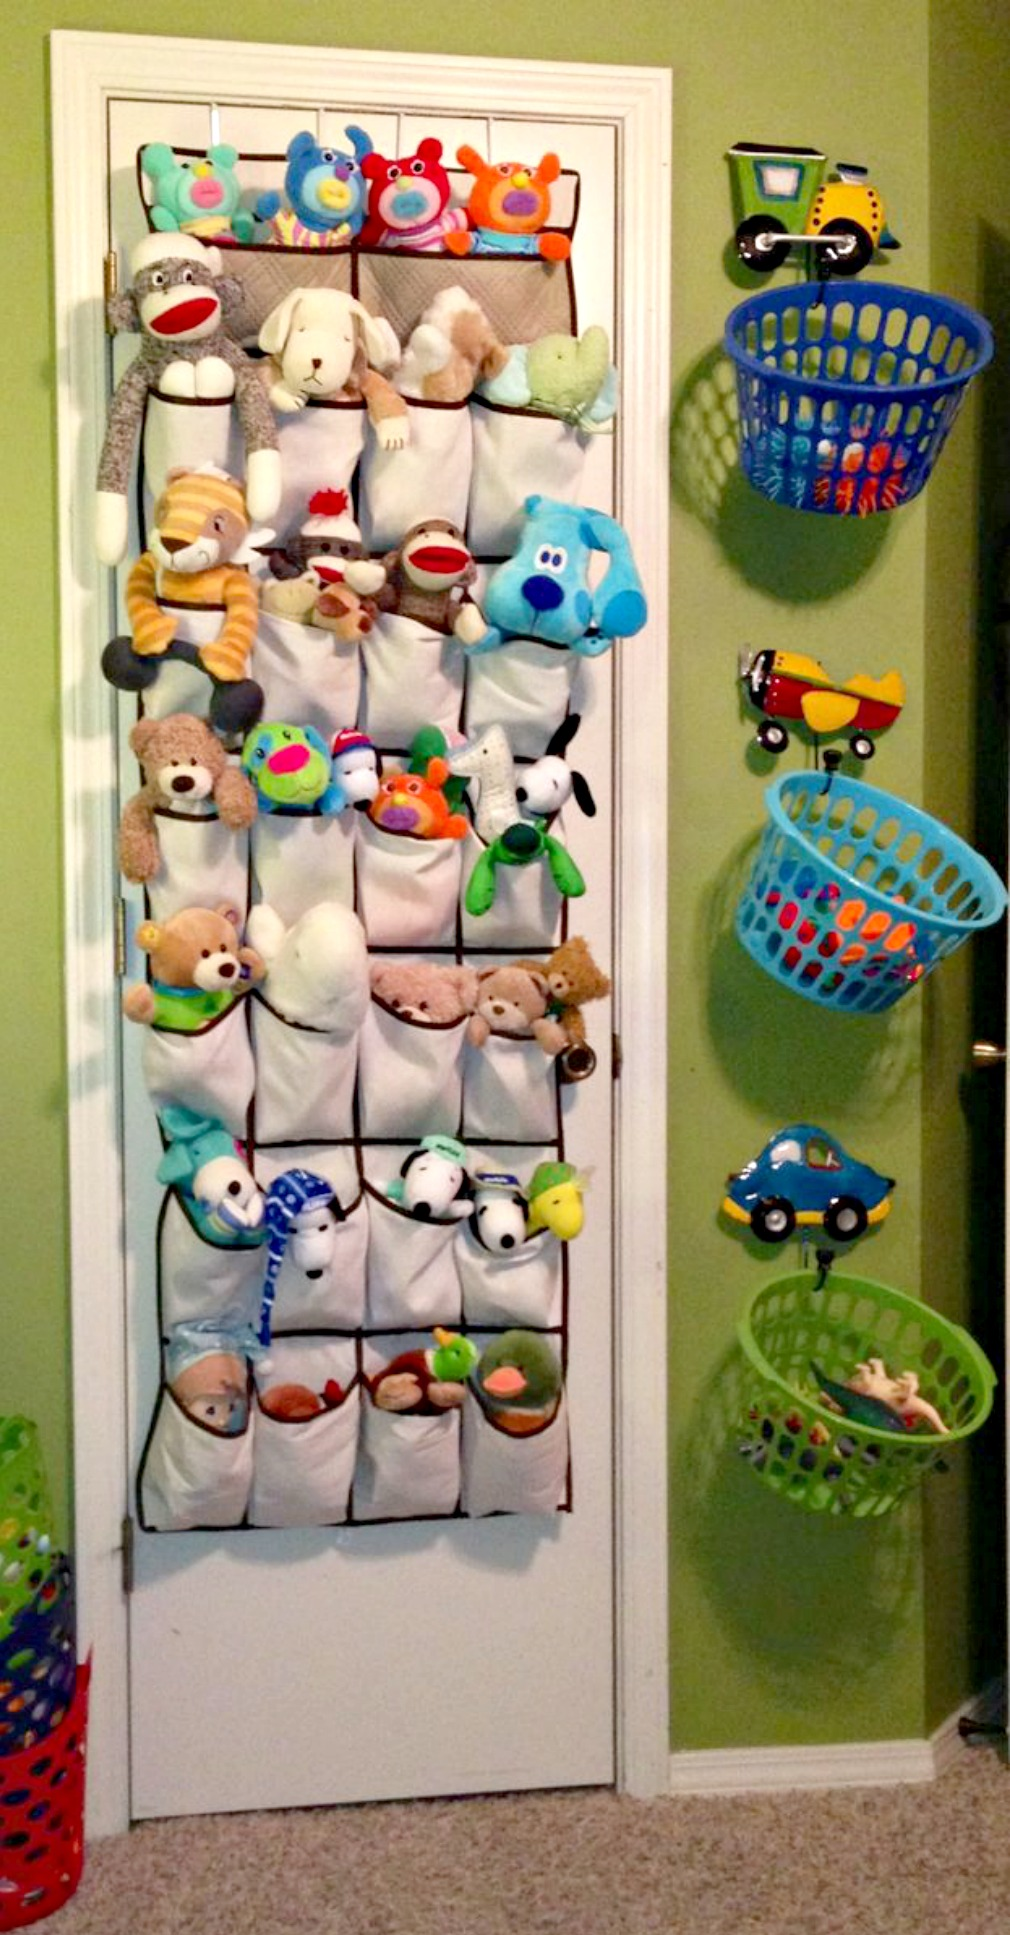 Kids room is the messiest place. It;s really risky, Kids can get injured due to shattering toys. Even children are not good at sorting their toy, it can grapes more space and look weatherlyp.gq for Sharing this toy storage solution.